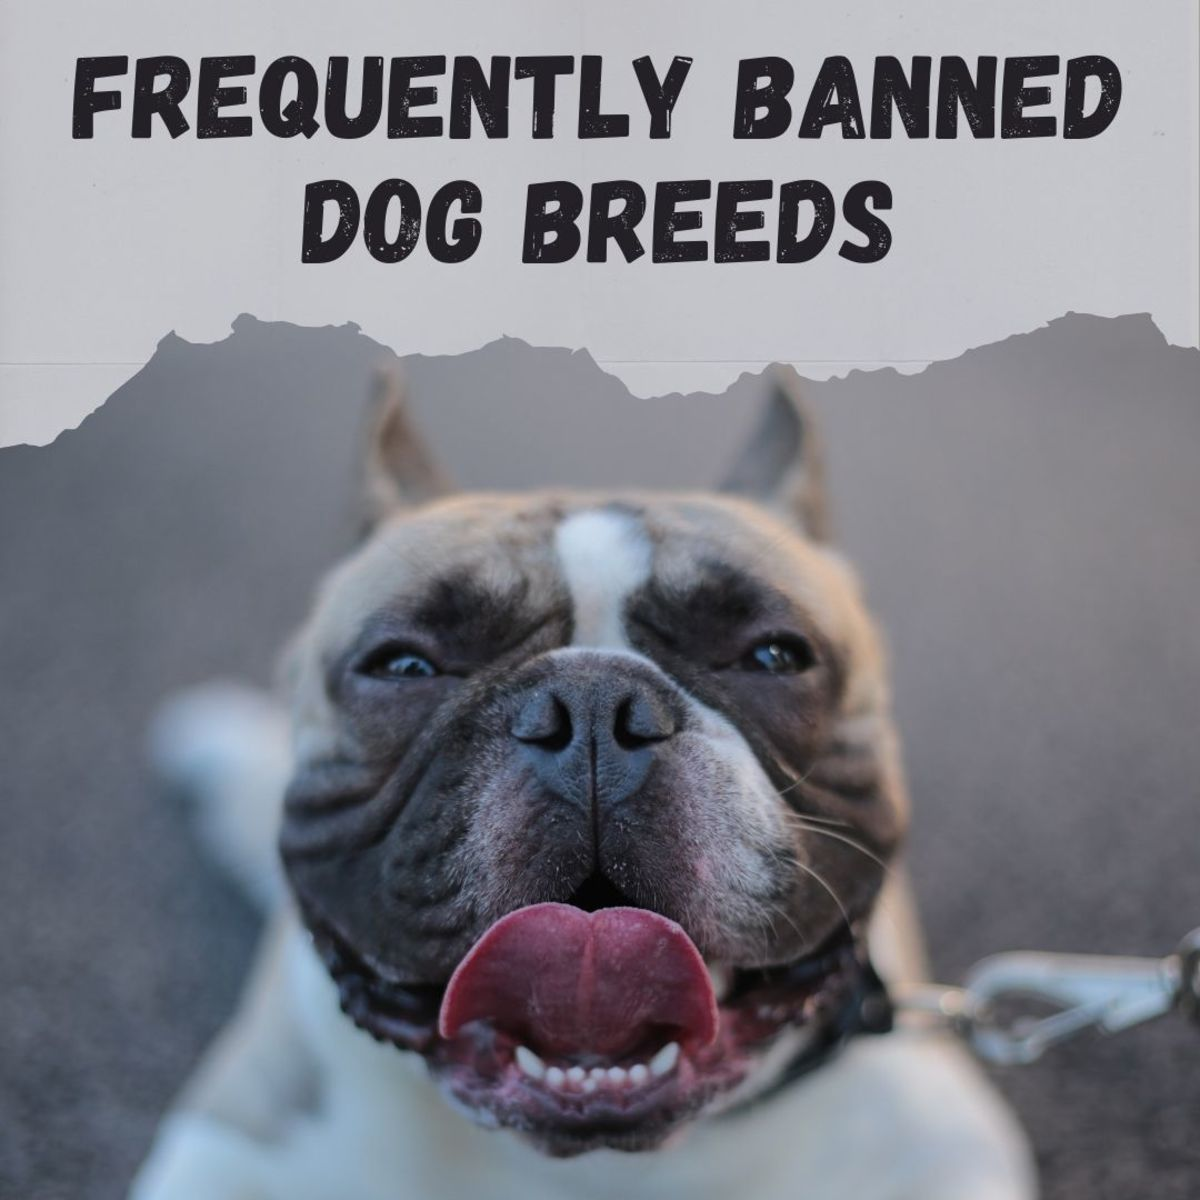 What are the most commonly banned dog breeds?